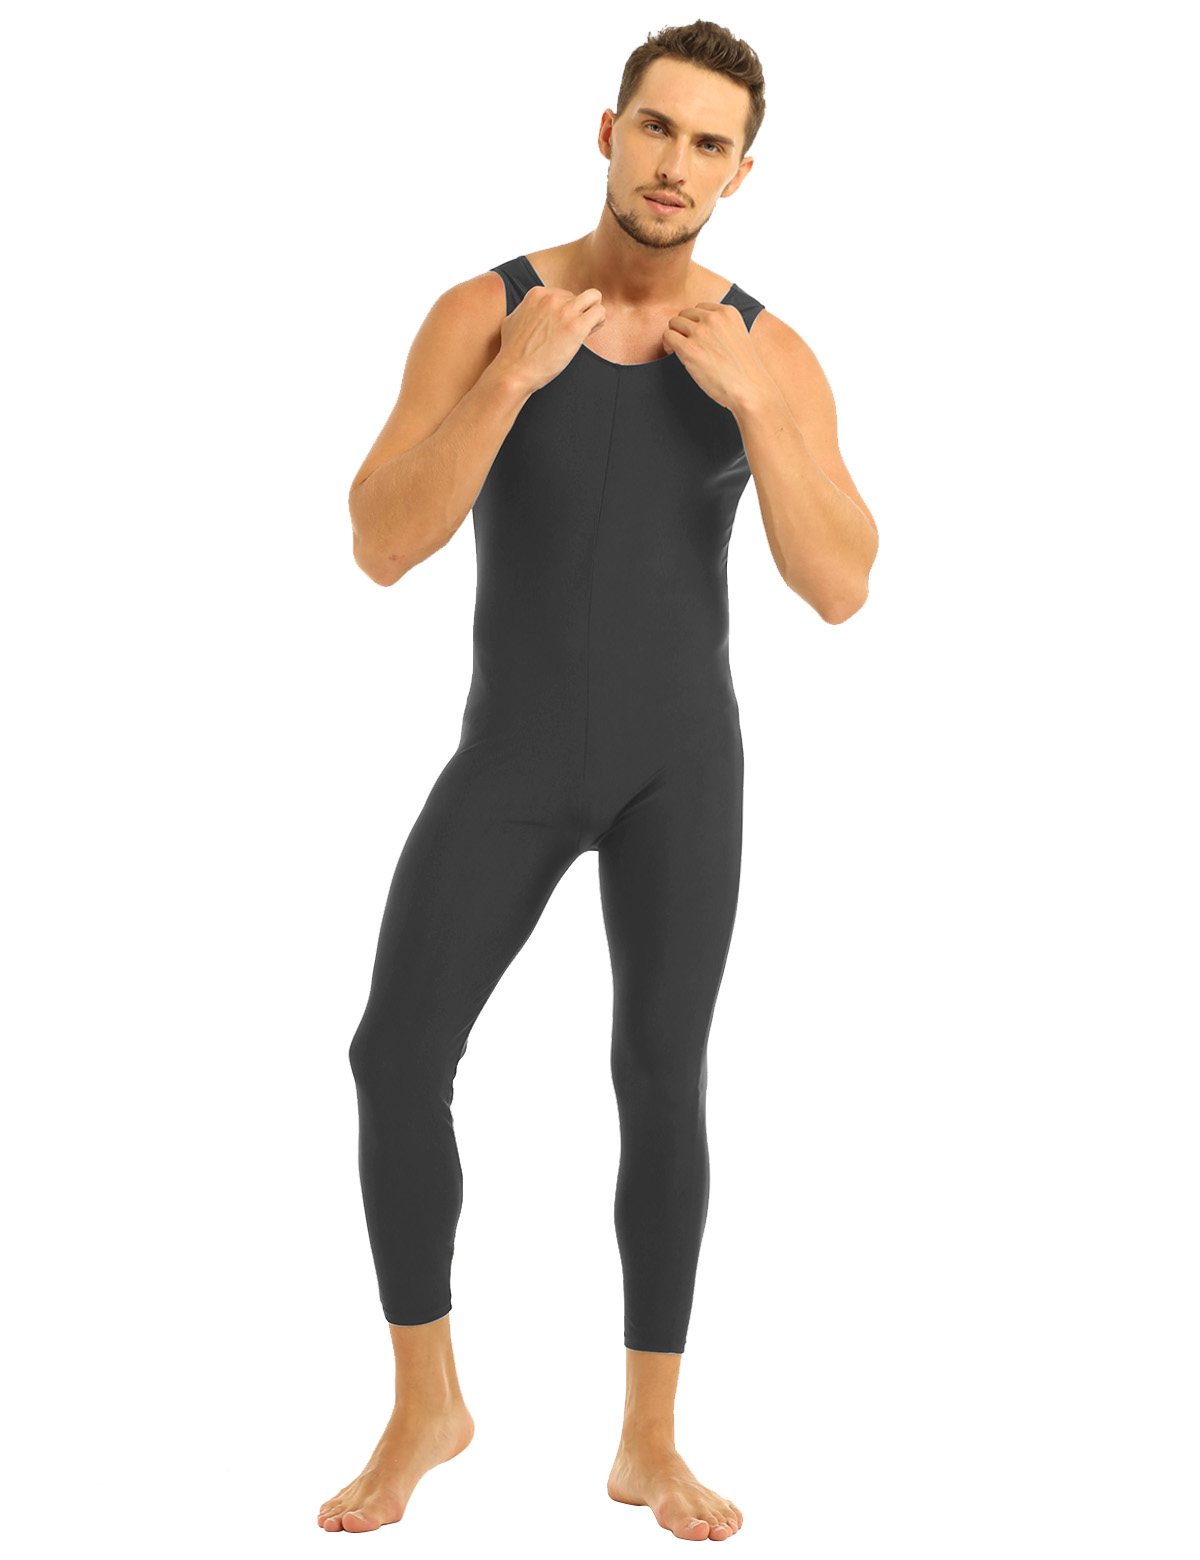 Men Sleeveless Leotard Bodysuit Lycra Tights Leggings for Ballet Dance Vest Teddy Sports Unitard Catsuit Male Dancewear Jumpsuit 17